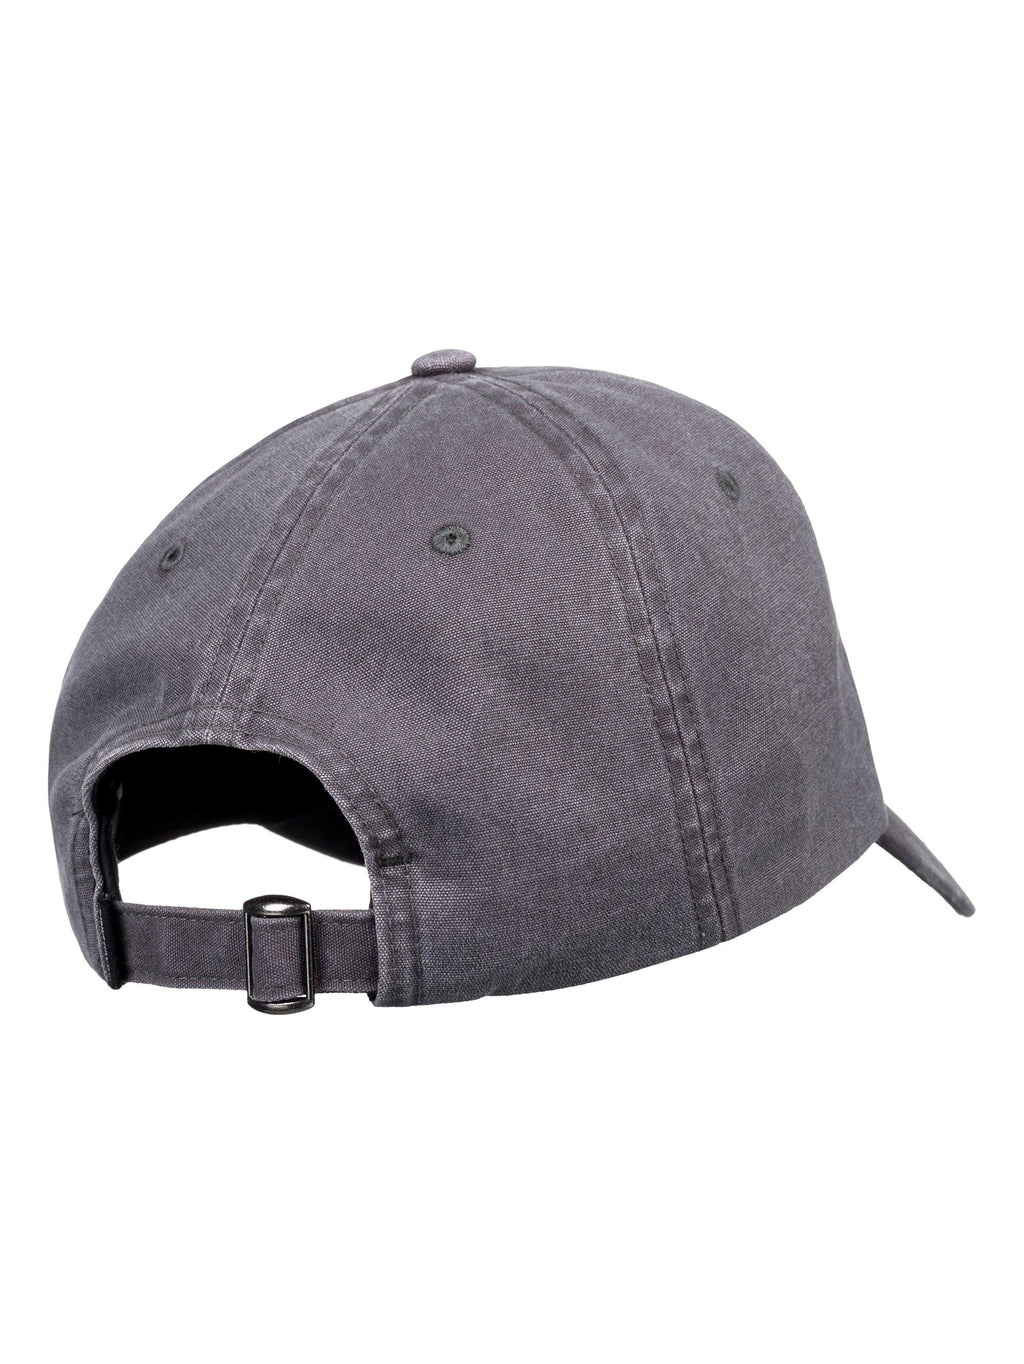 Hood Muffin Hat - Men's